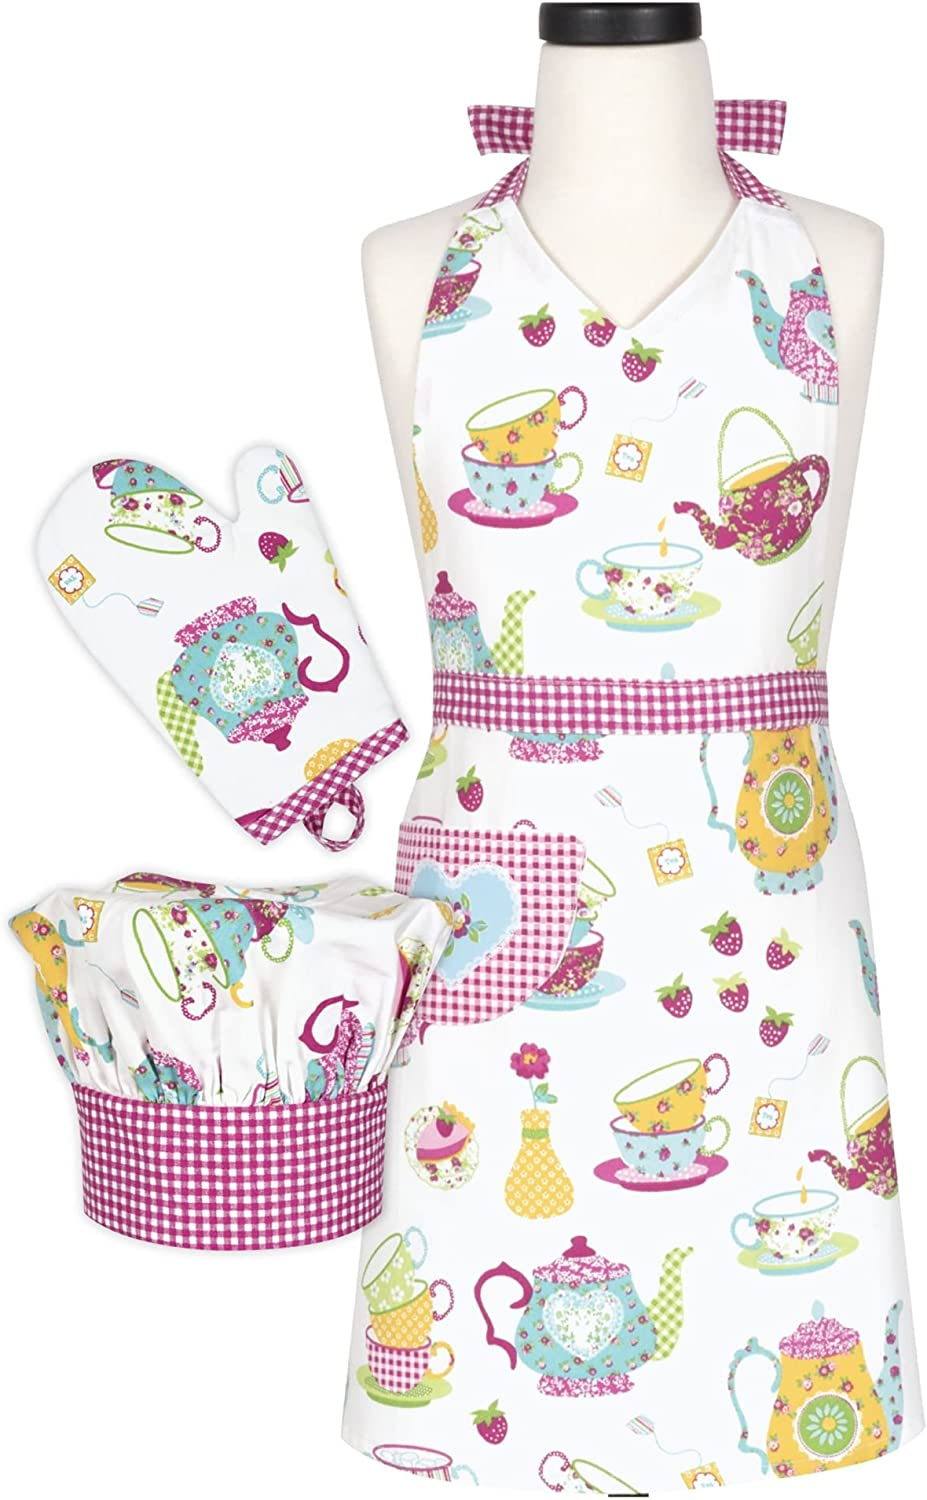 Handstand Kitchen Child's 'Spring Tea Party' 100% Cotton Apron, Mitt and Chef's Hat Gift Set